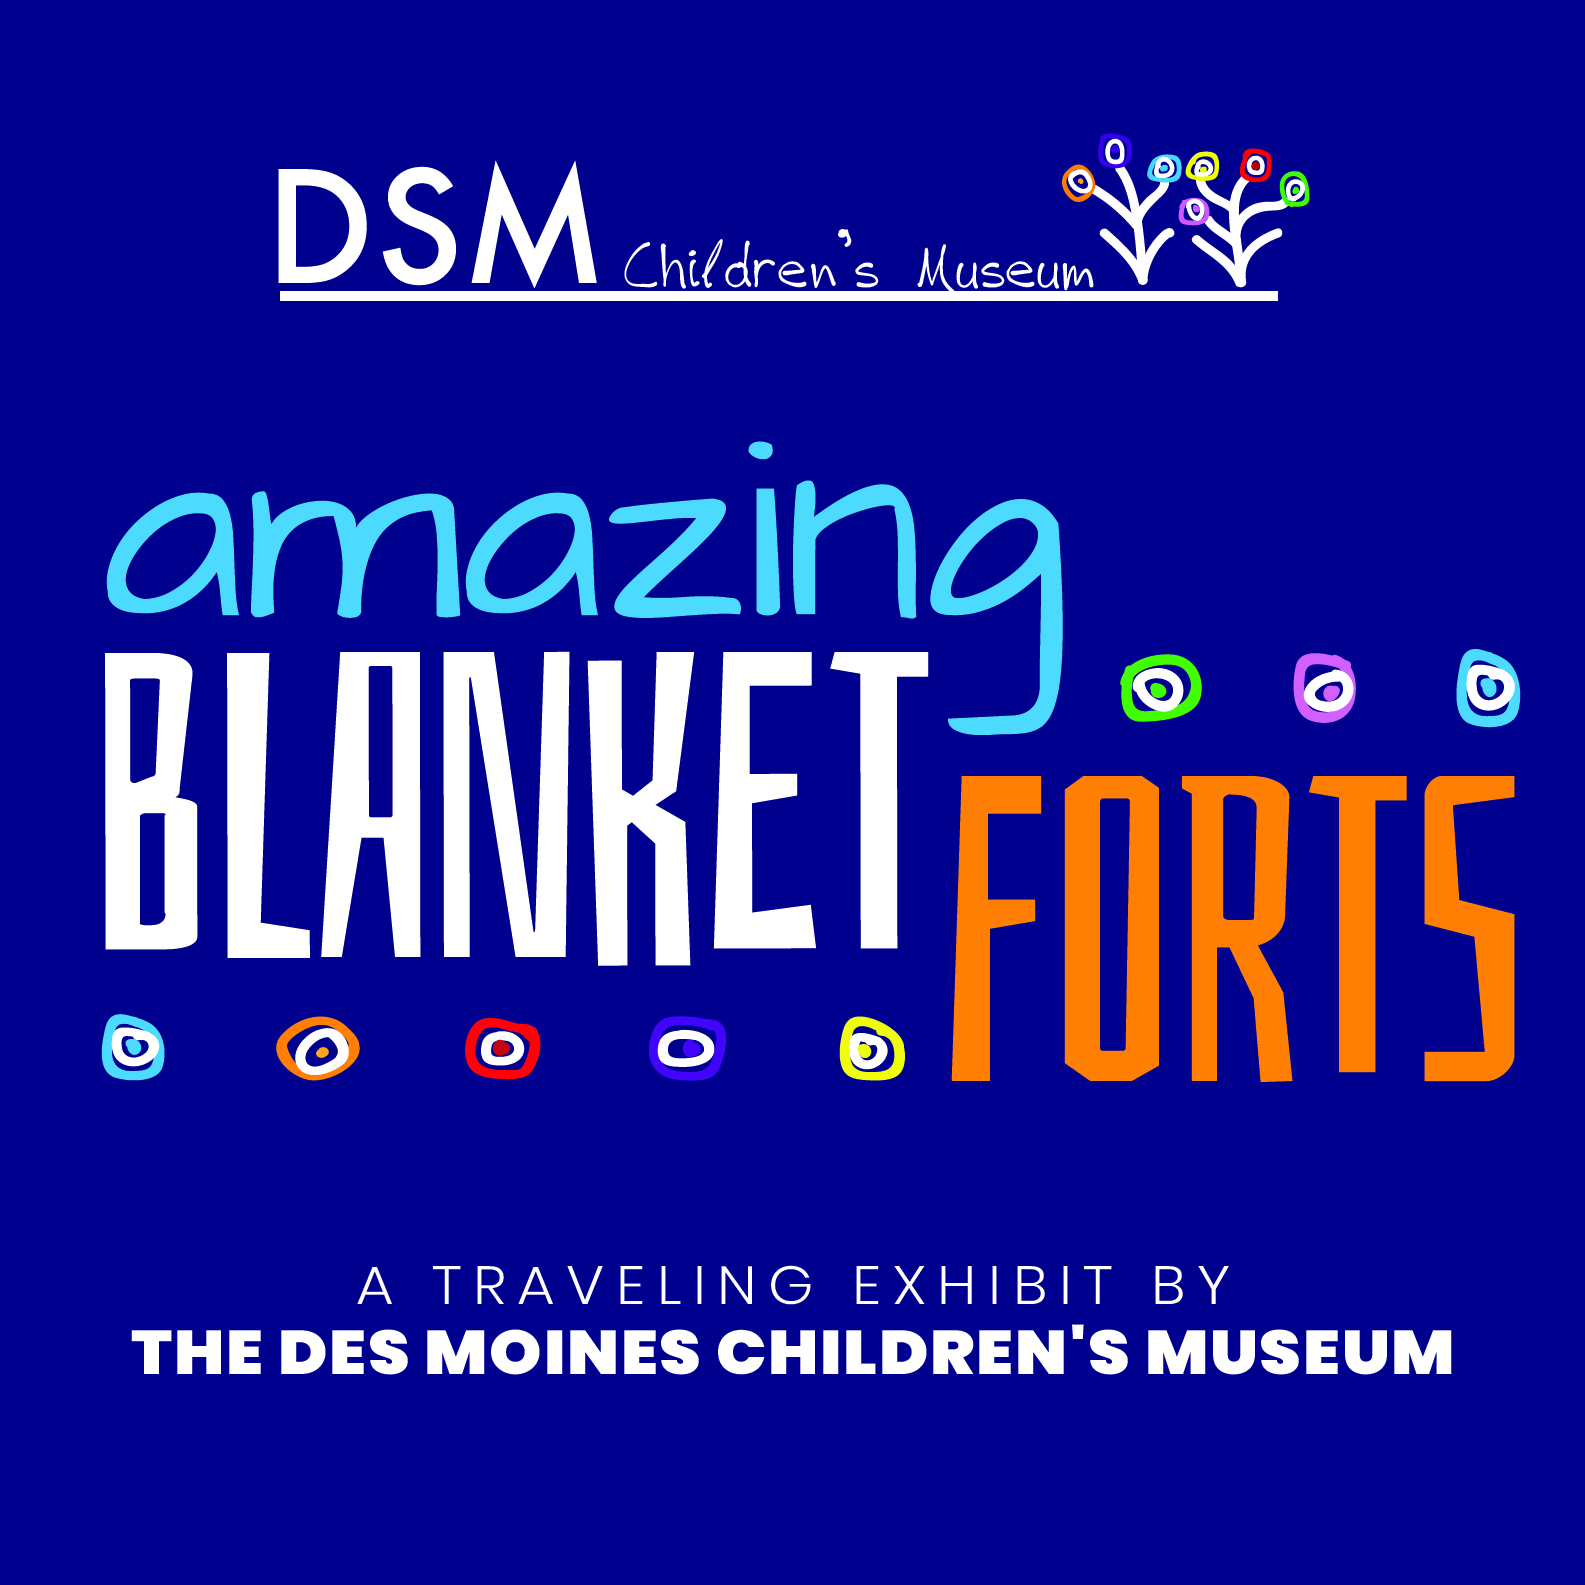 DSM Children's Museum: 3 Events, 2 New Exhibits, 1 Very Busy Weekend!